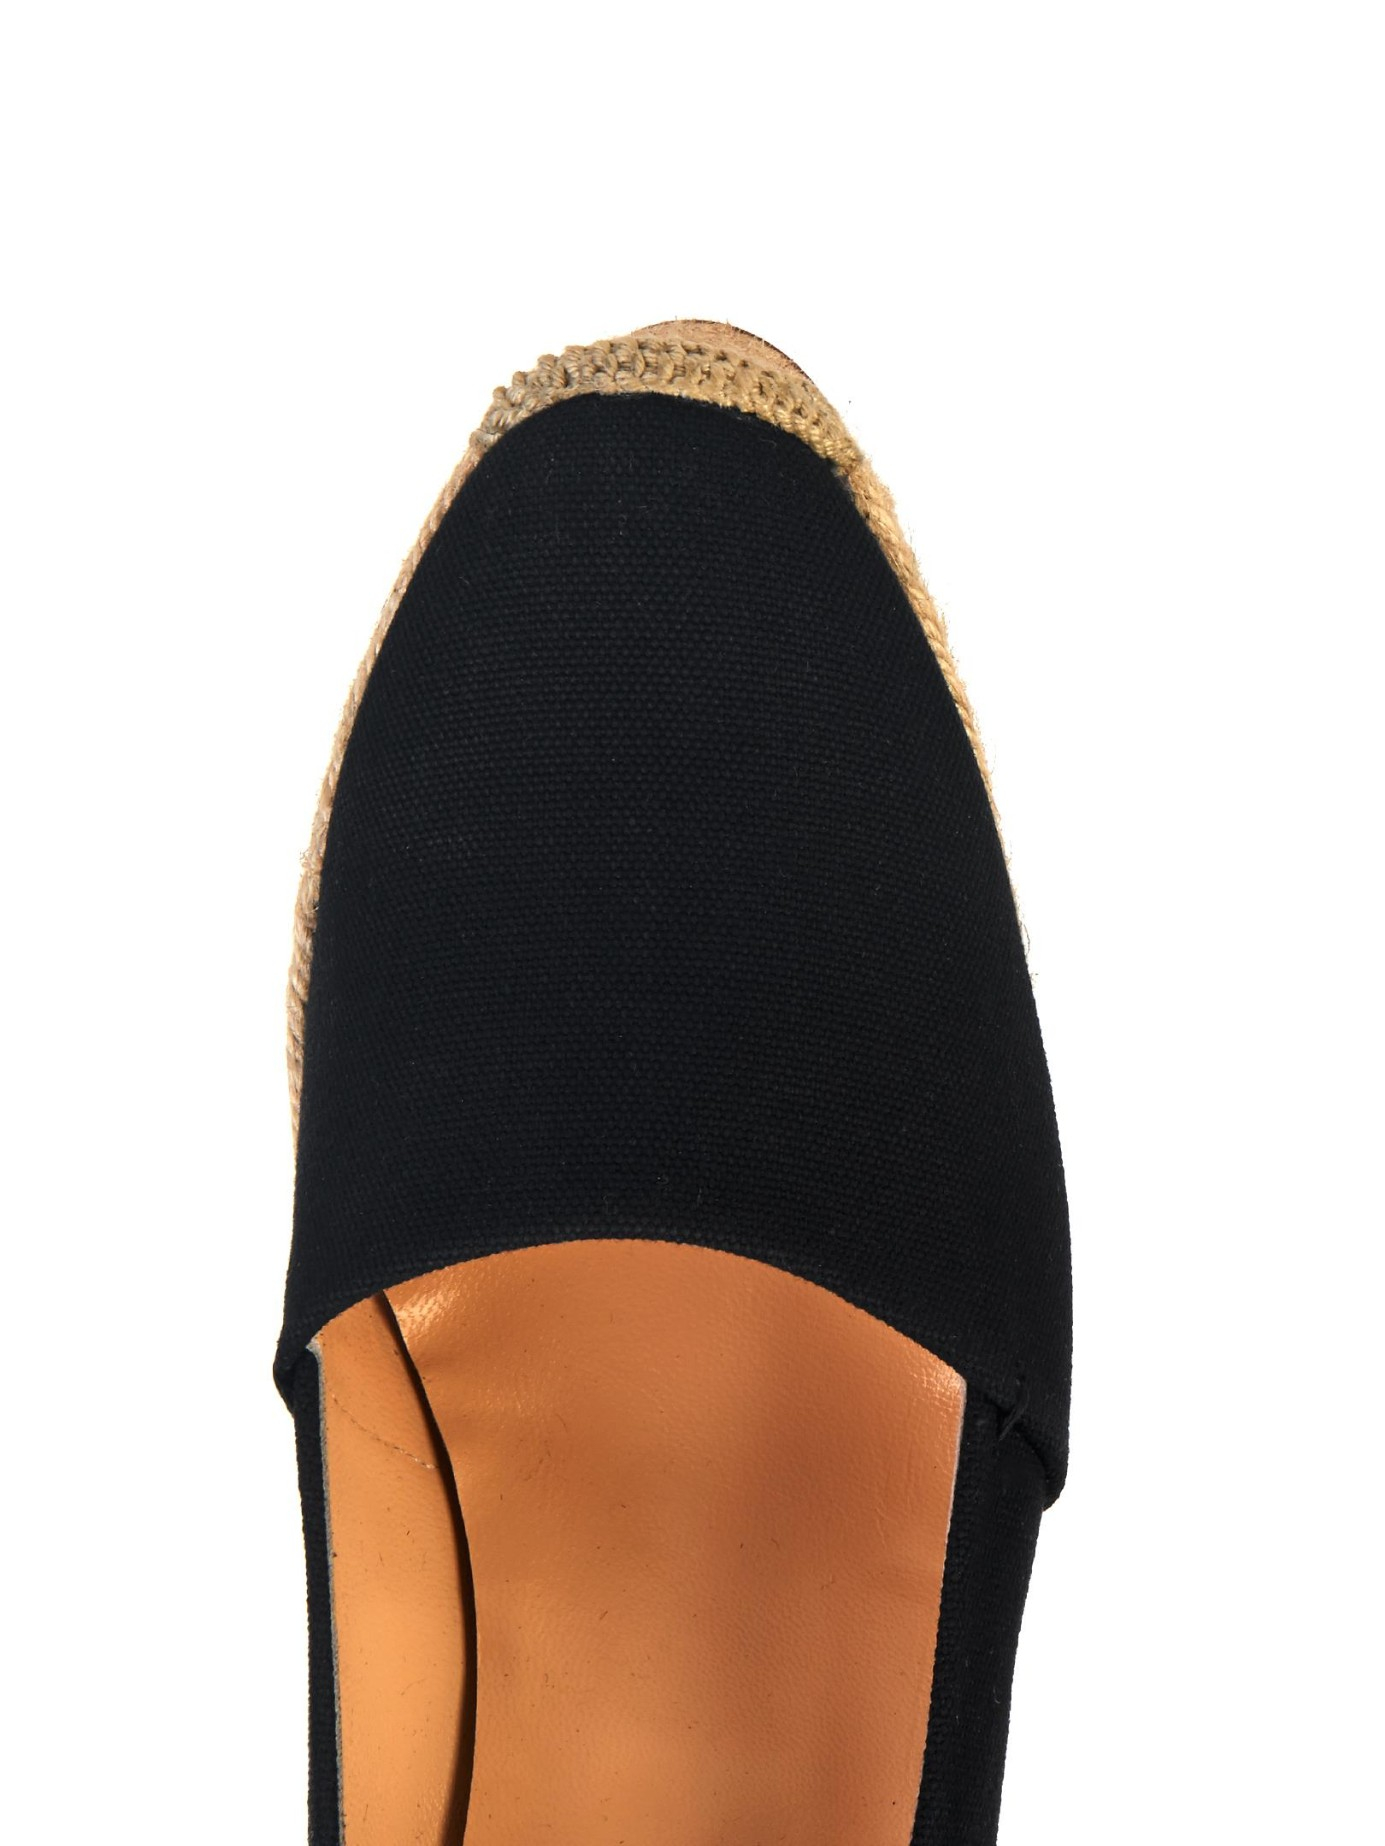 replica christian louboutin shoes for men - christian louboutin round-toe espadrille wedges Black canvas | The ...